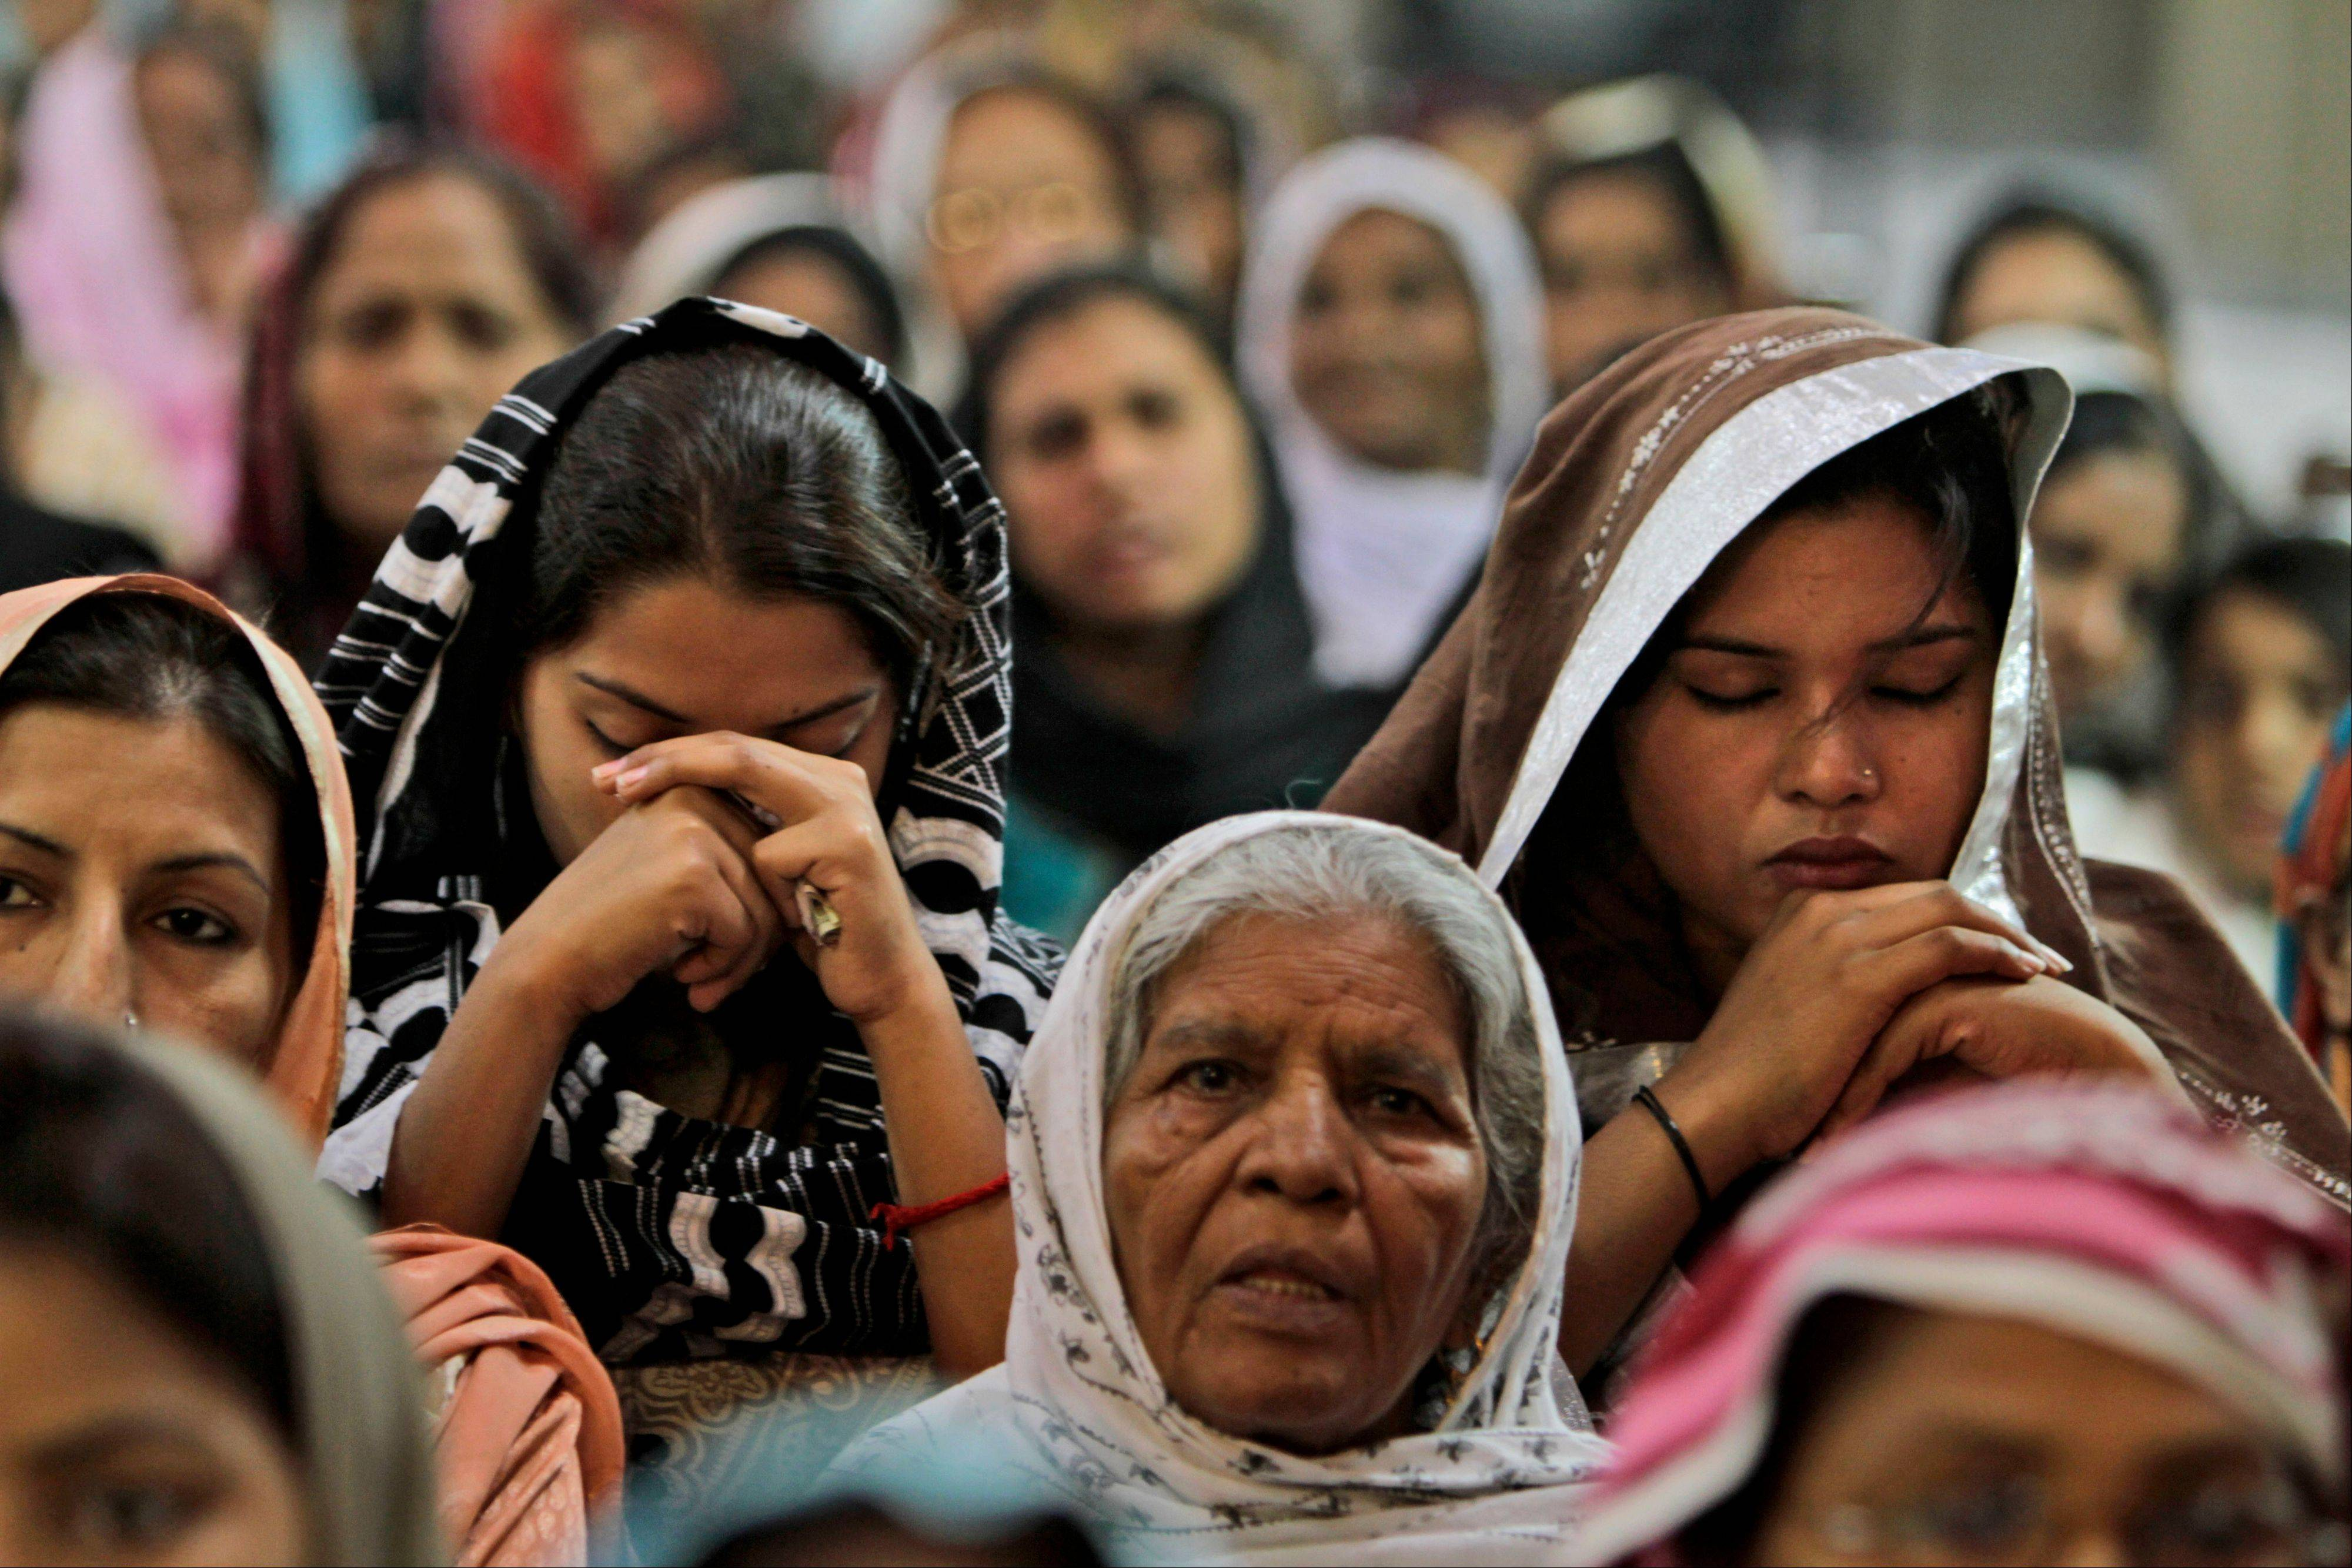 Pakistani Christians pray for the recovery of 14-year-old schoolgirl Malala Yousufzai, who was shot last Tuesday by a Taliban gunman for speaking out in support of education for women, at the Sacred Heart Cathedral Church in Lahore, Pakistan, Sunday.